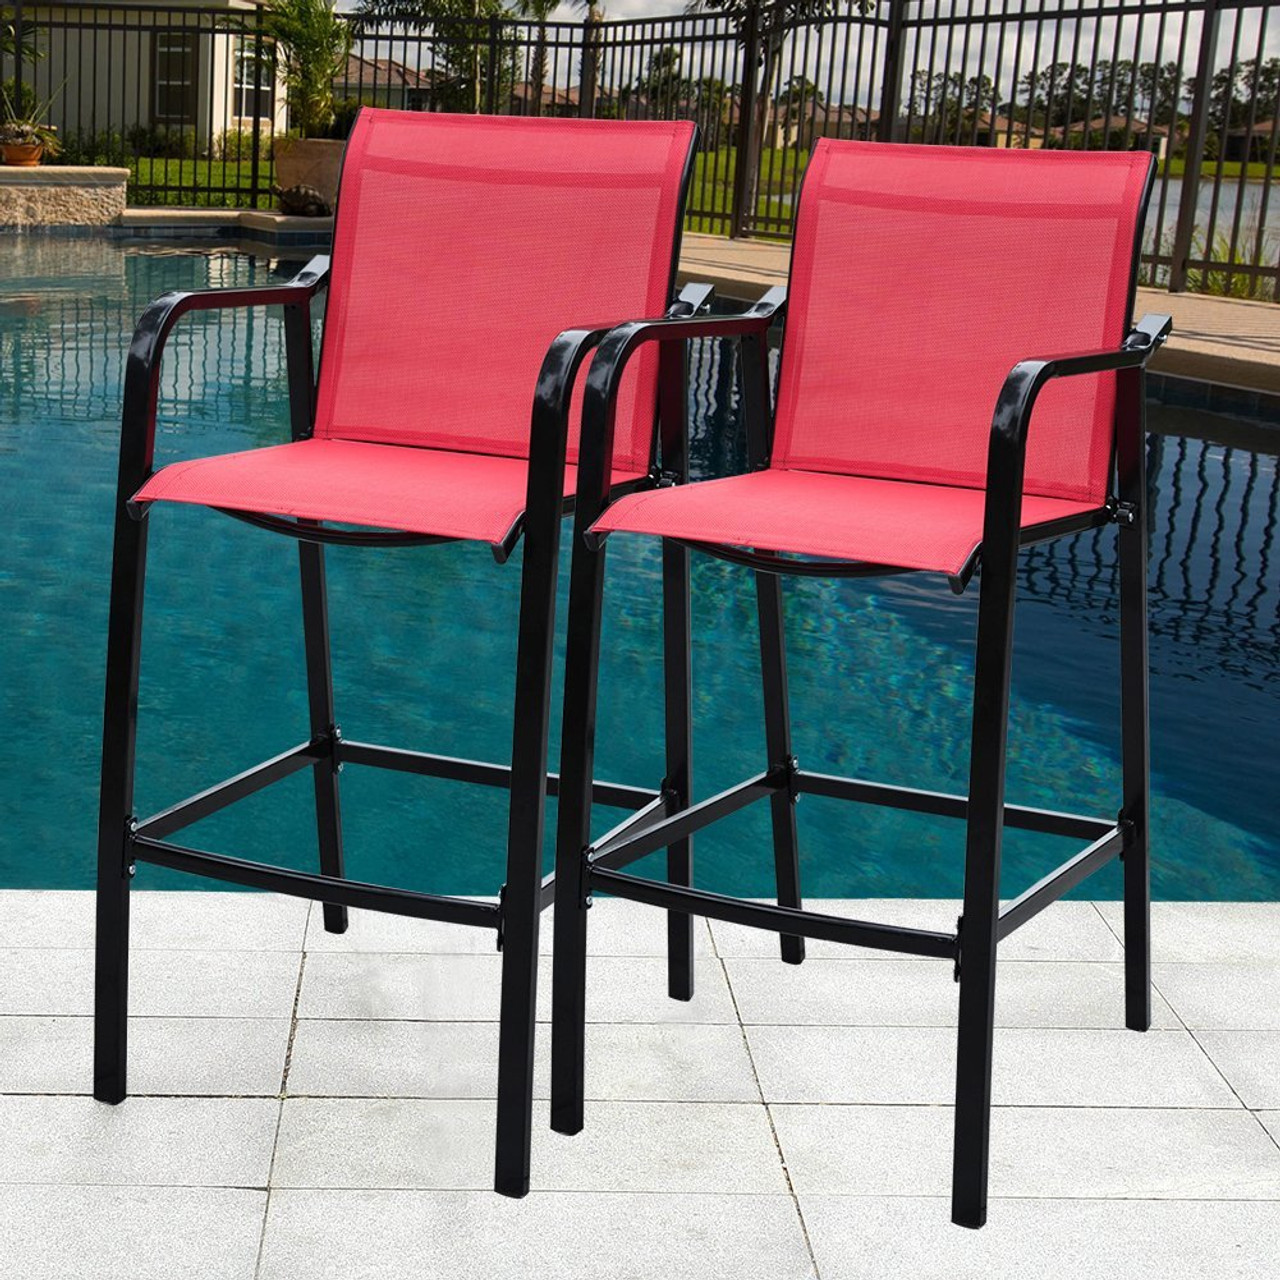 Strange Sundale Outdoor Counter Height Bar Stool All Weather Patio Furniture With Quick Dry Textilene Fabric 2 Pcs Set Red Home Interior And Landscaping Ologienasavecom